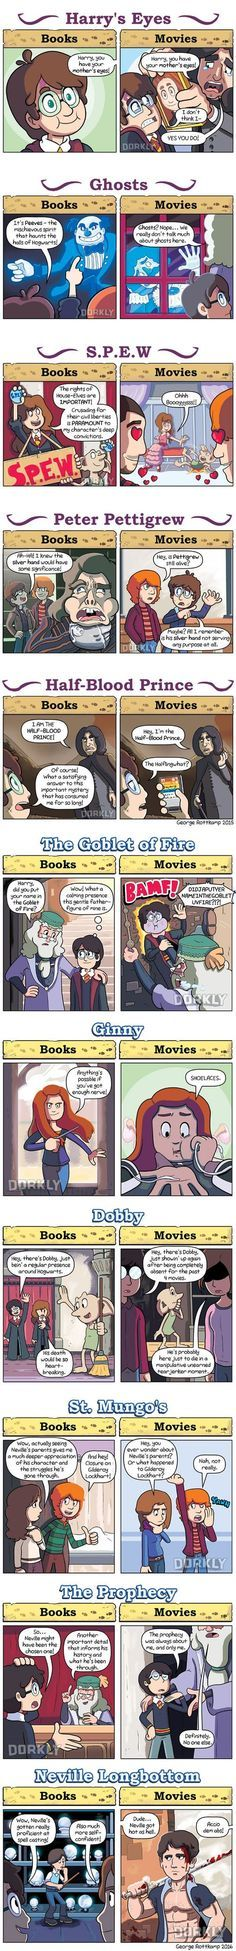 11 Ways Harry Potter Movies Are Different From the Books:xD no but they did leave out so many good parts im so pissed